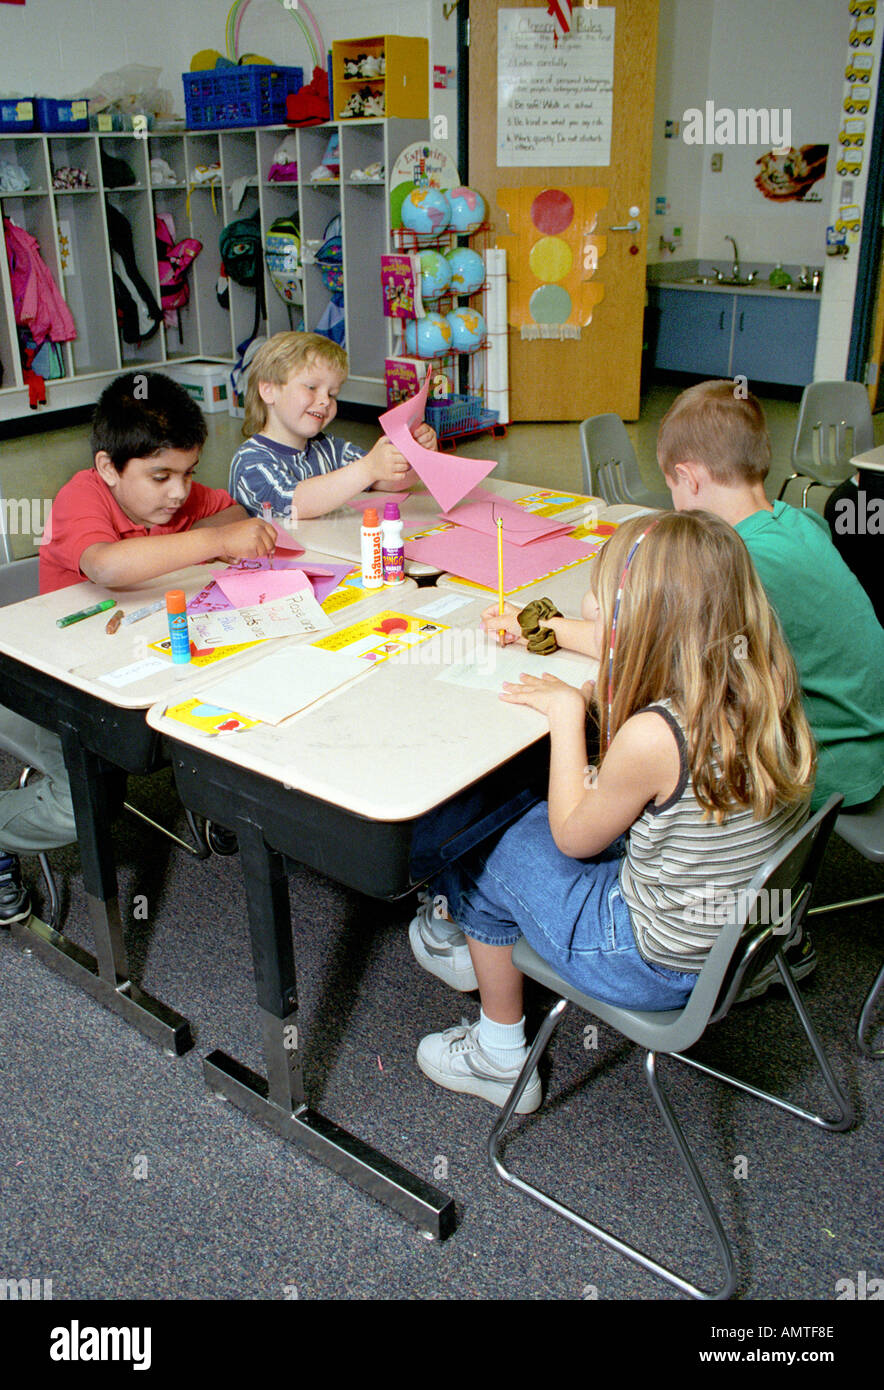 1 st grade concept SPECIALIZATION 4 kids each do a different part of the whole product - Stock Image